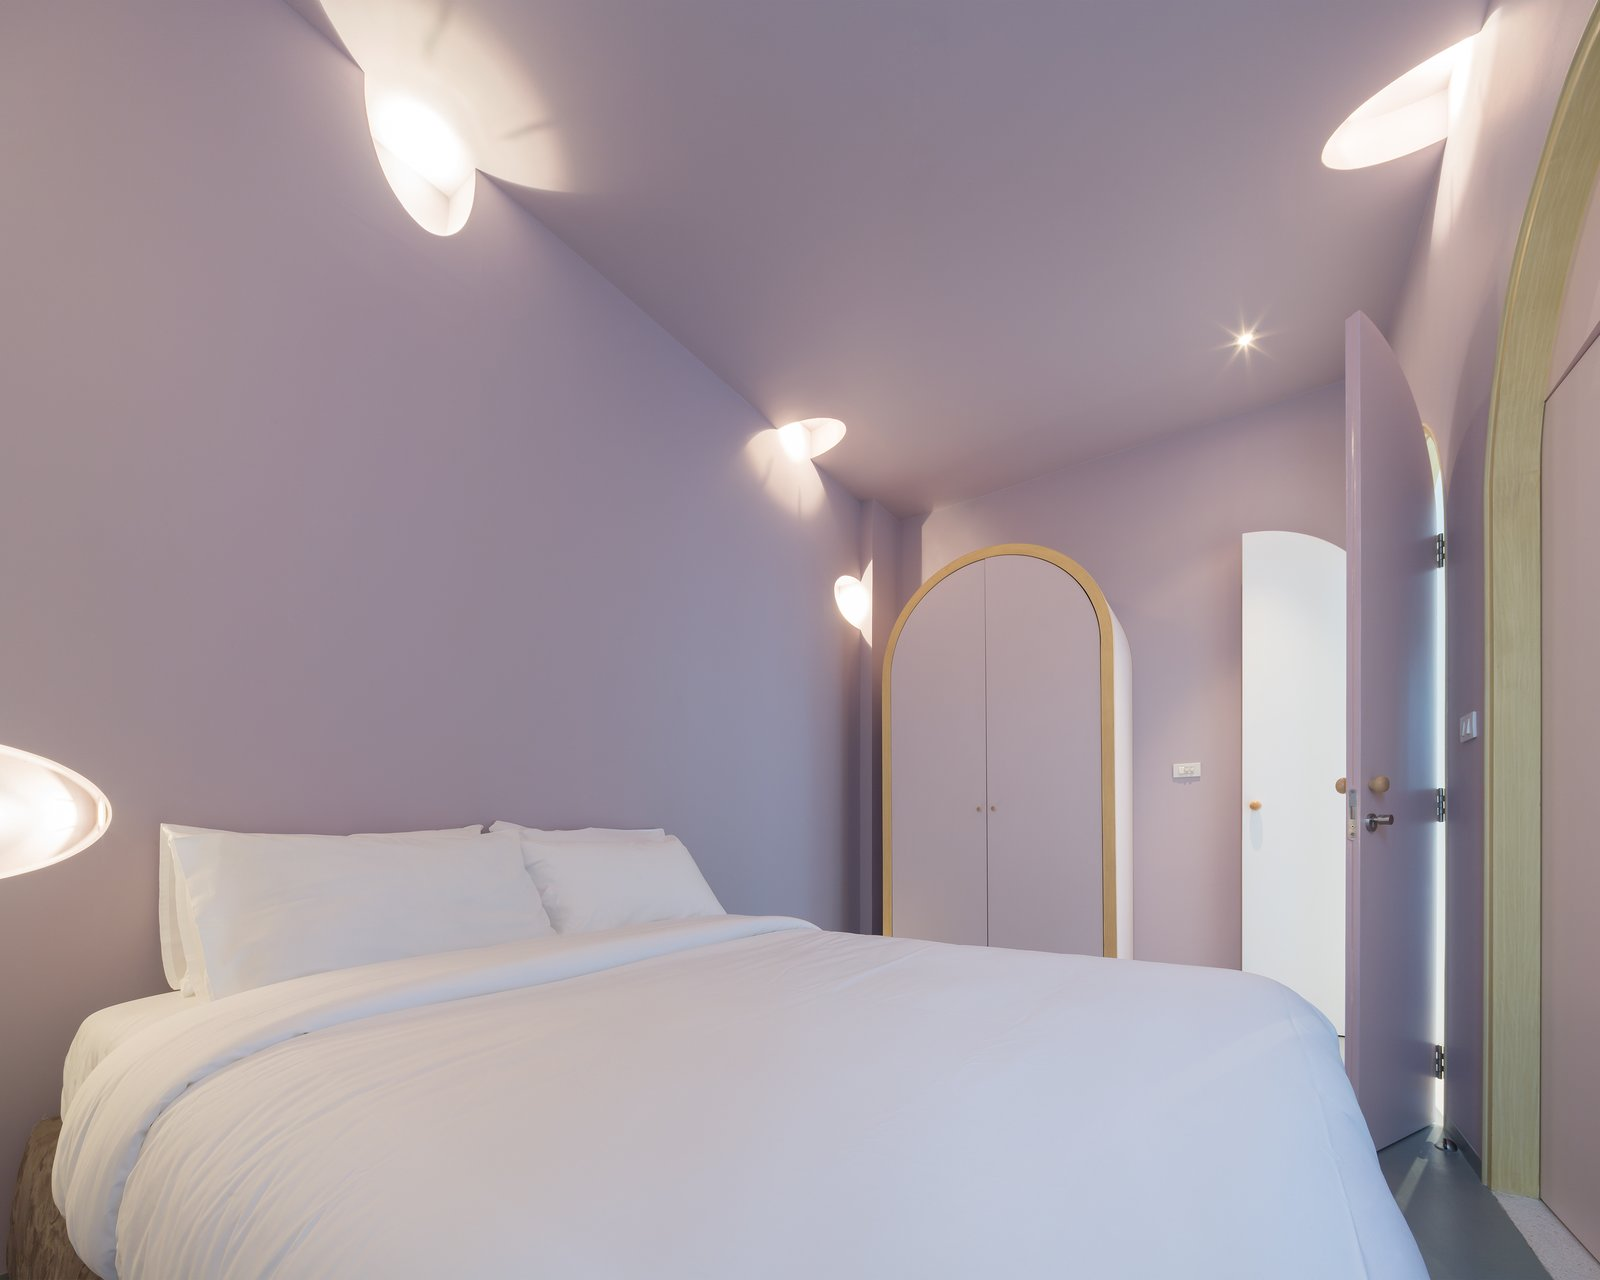 Tagged: Bedroom, Recessed Lighting, and Bed. Inspired by Tom and Jerry, This Net-Filled Vacation Home Is a Kid's Paradise - Photo 10 of 11